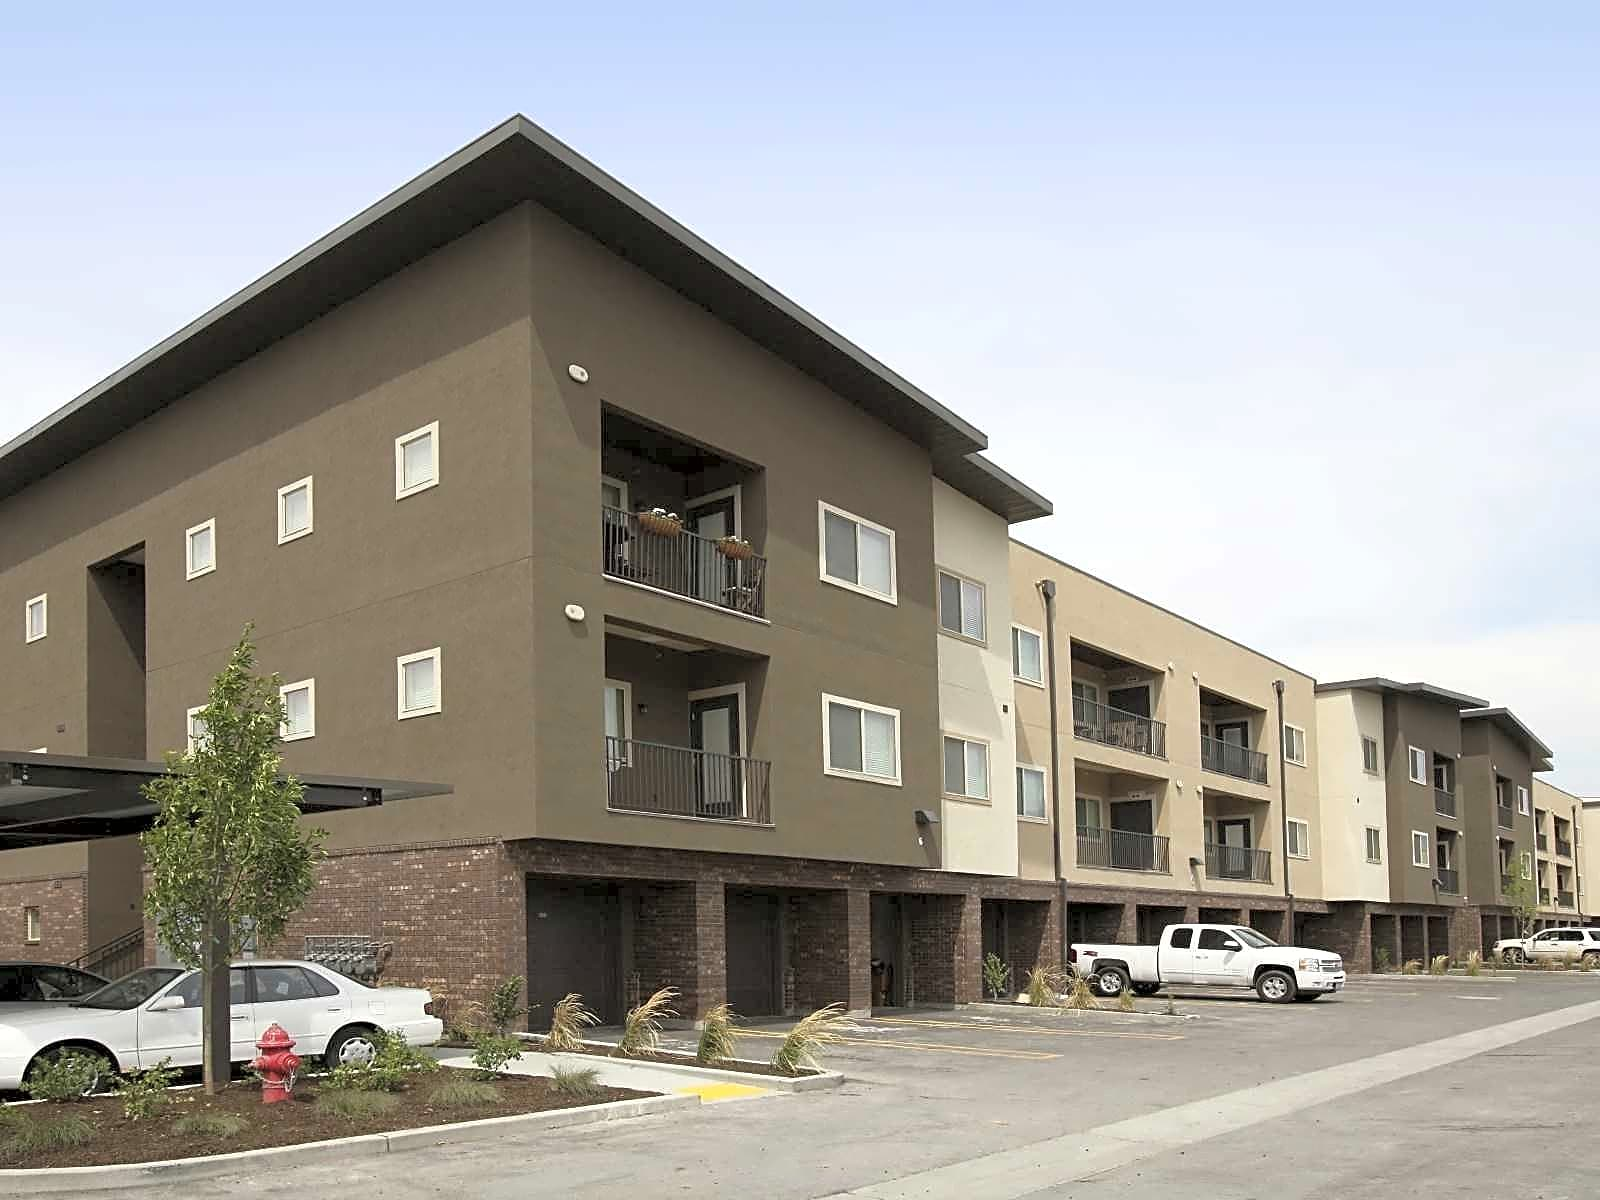 2550 South Main Apartments for rent in Salt Lake City